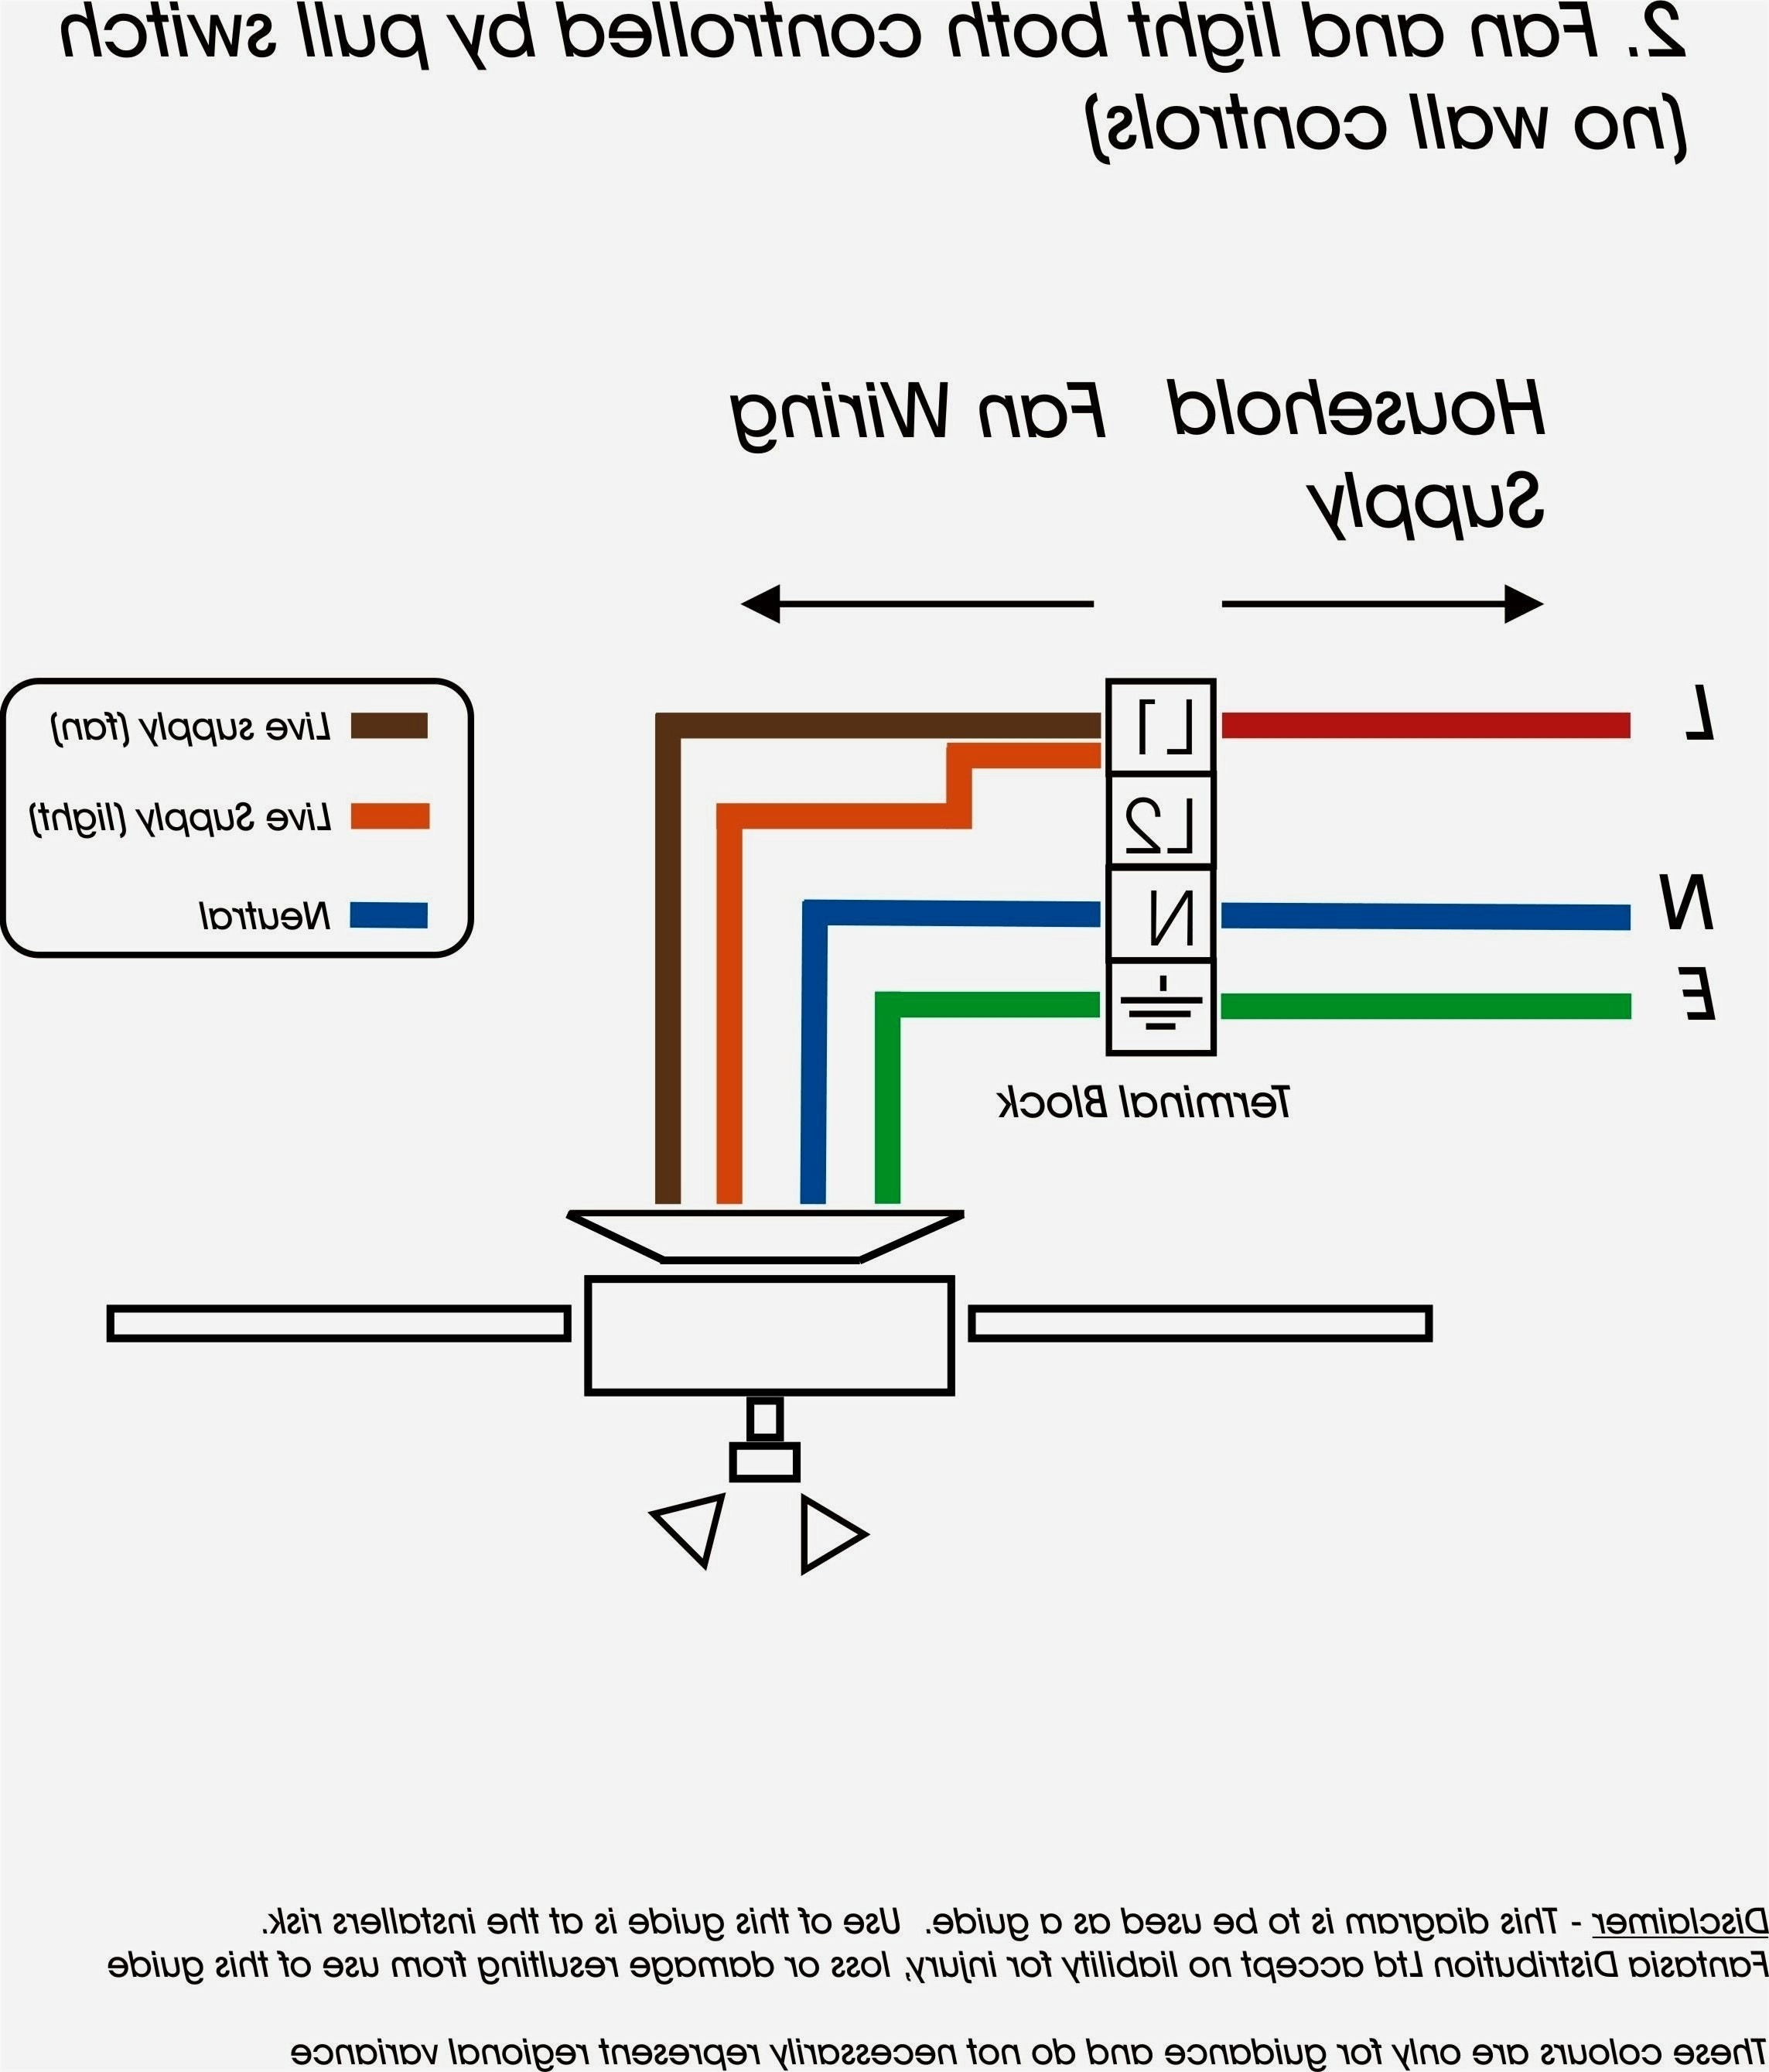 navigation light wiring diagram Hallway Light Switch Wiring Diagram New Ceiling Fan Single With DOWNLOAD Wiring Diagram Details